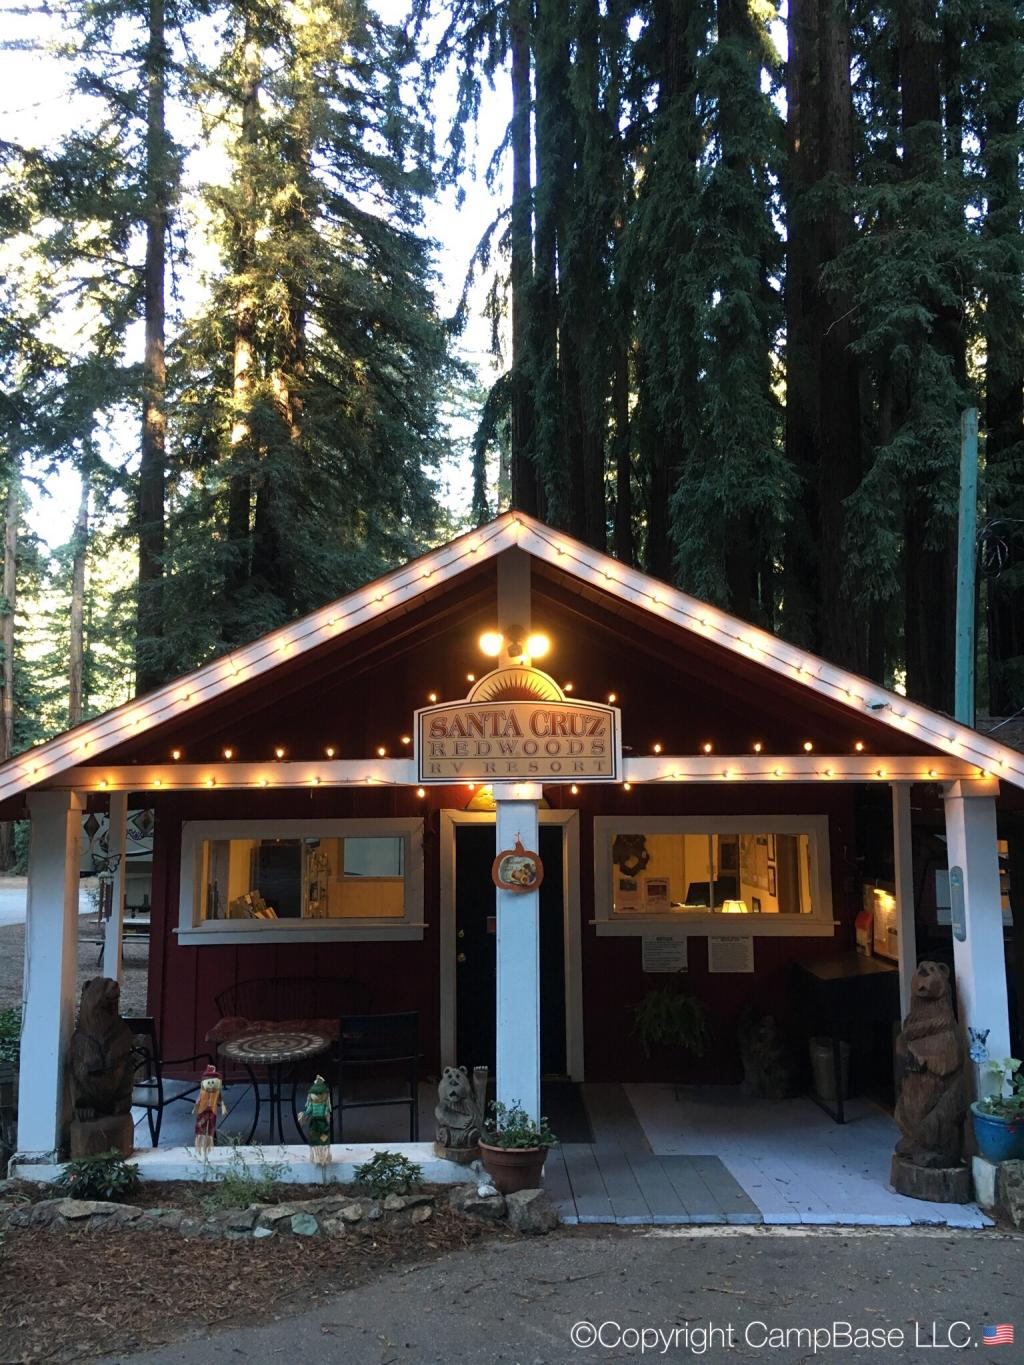 Santa Cruz Redwoods Rv Resort Felton California